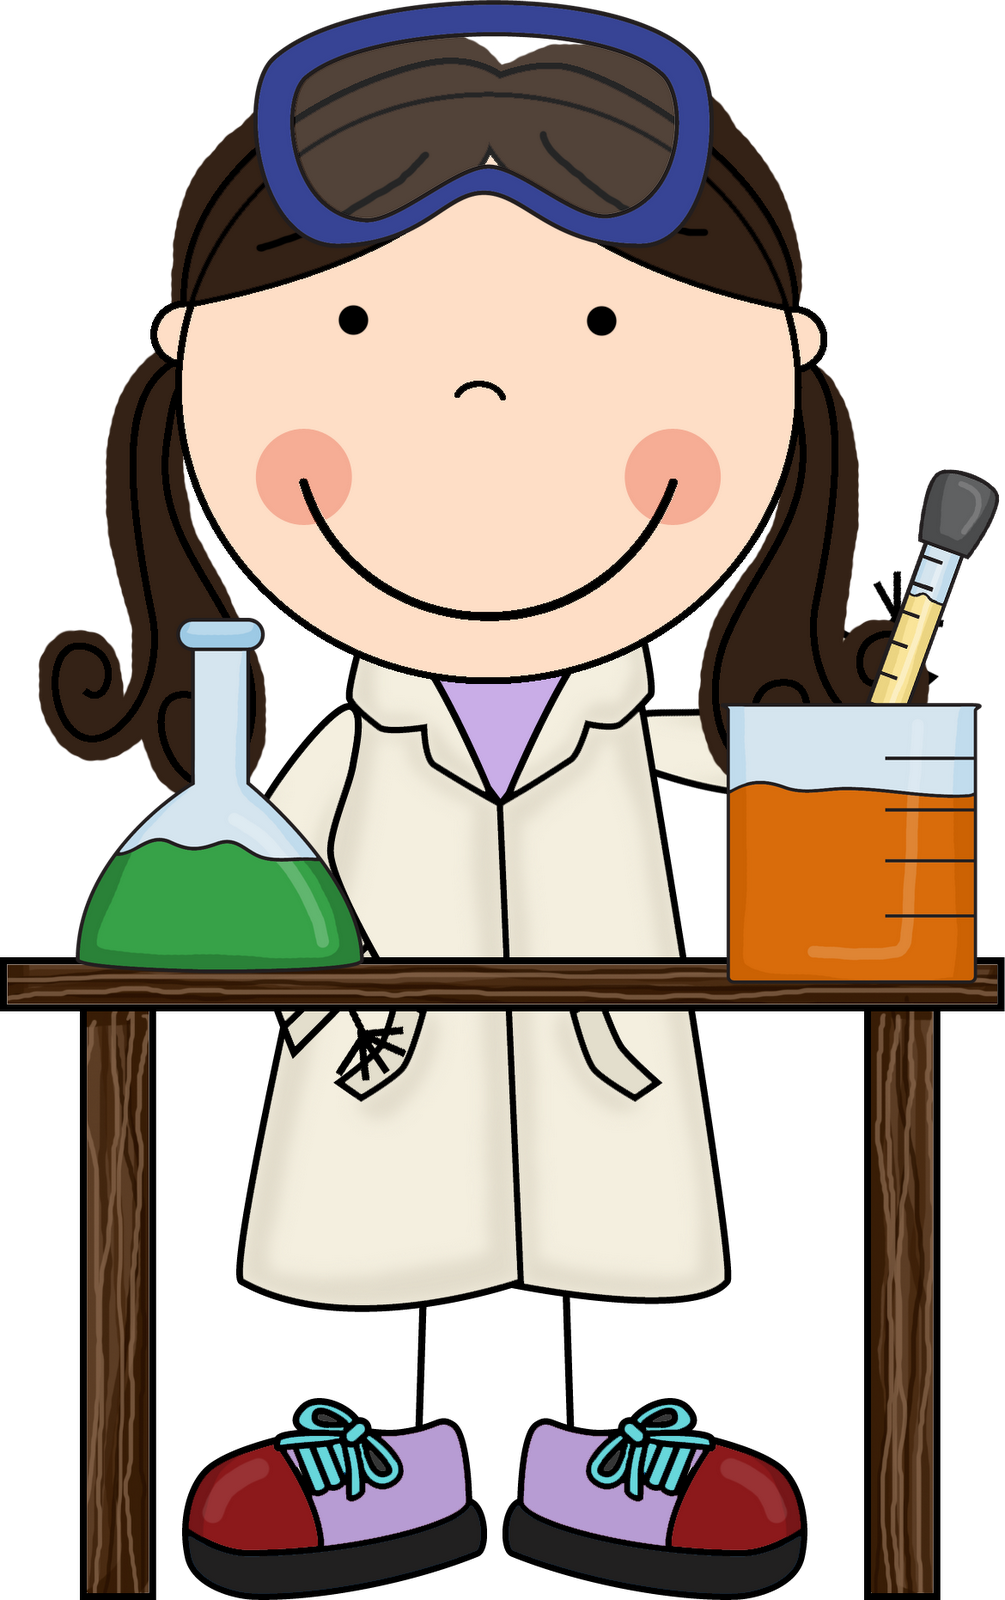 Essay clipart exam board. Little miss hypothesis looks